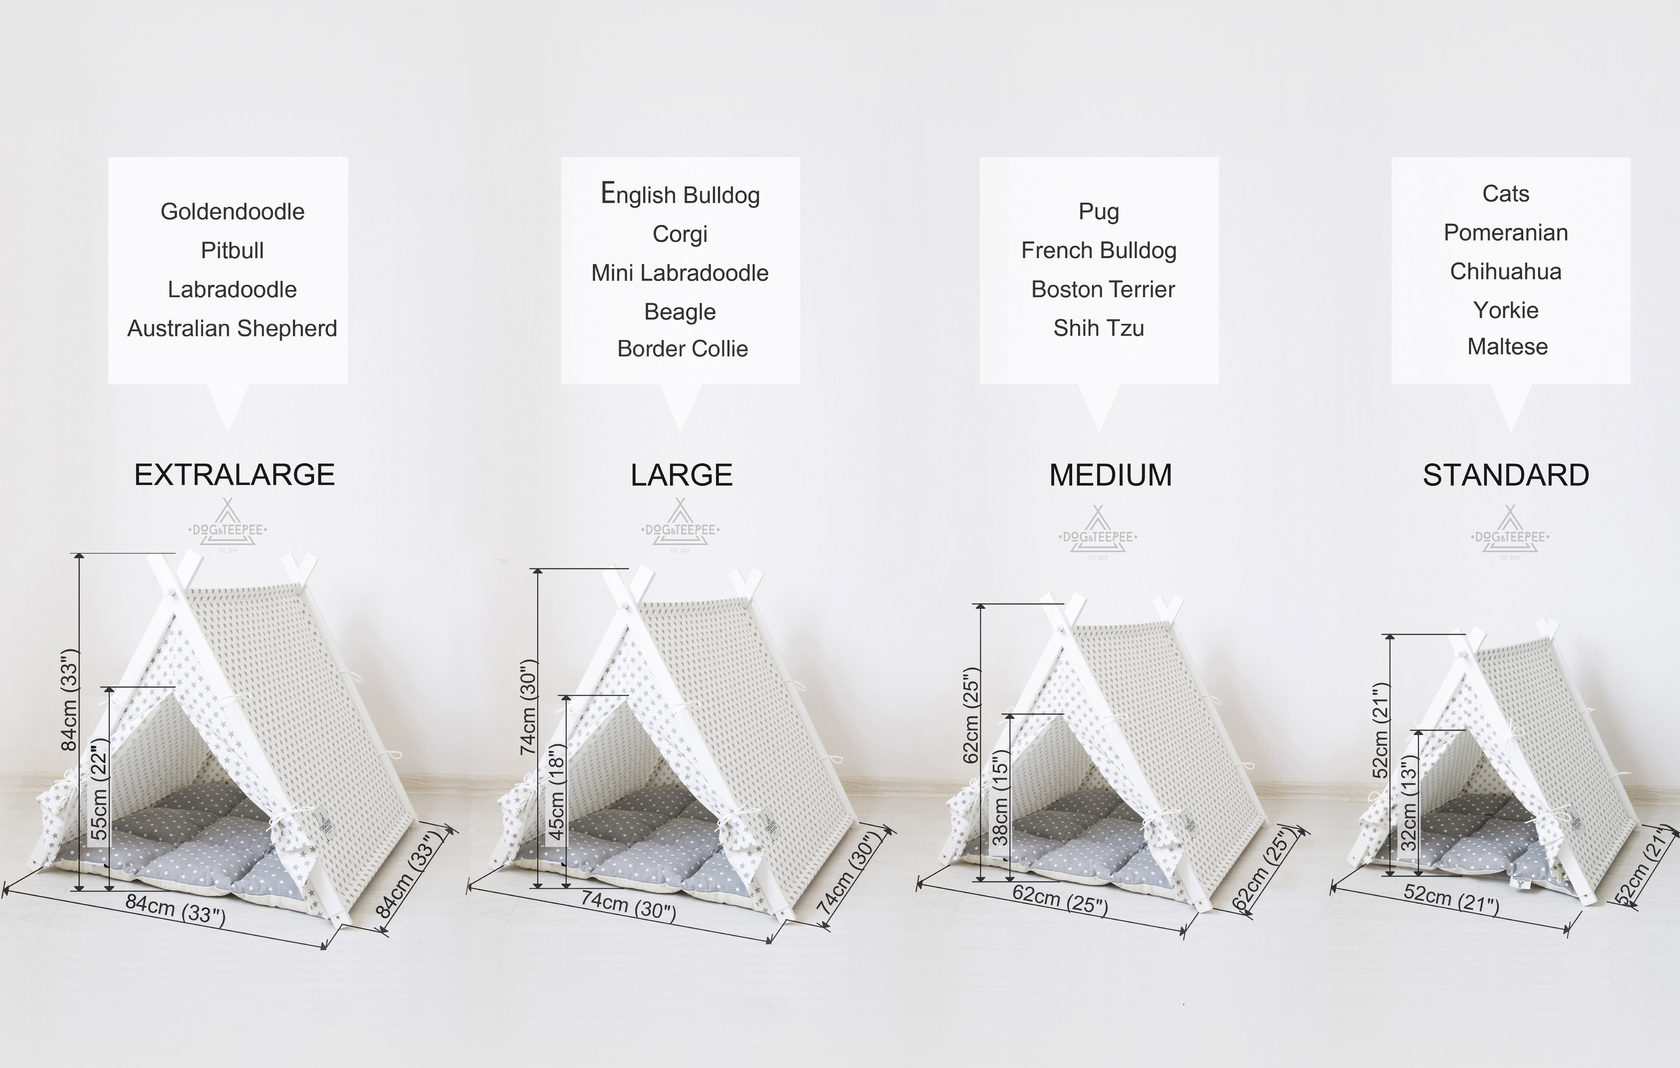 Dog teepee size chart by DogAndTeepee